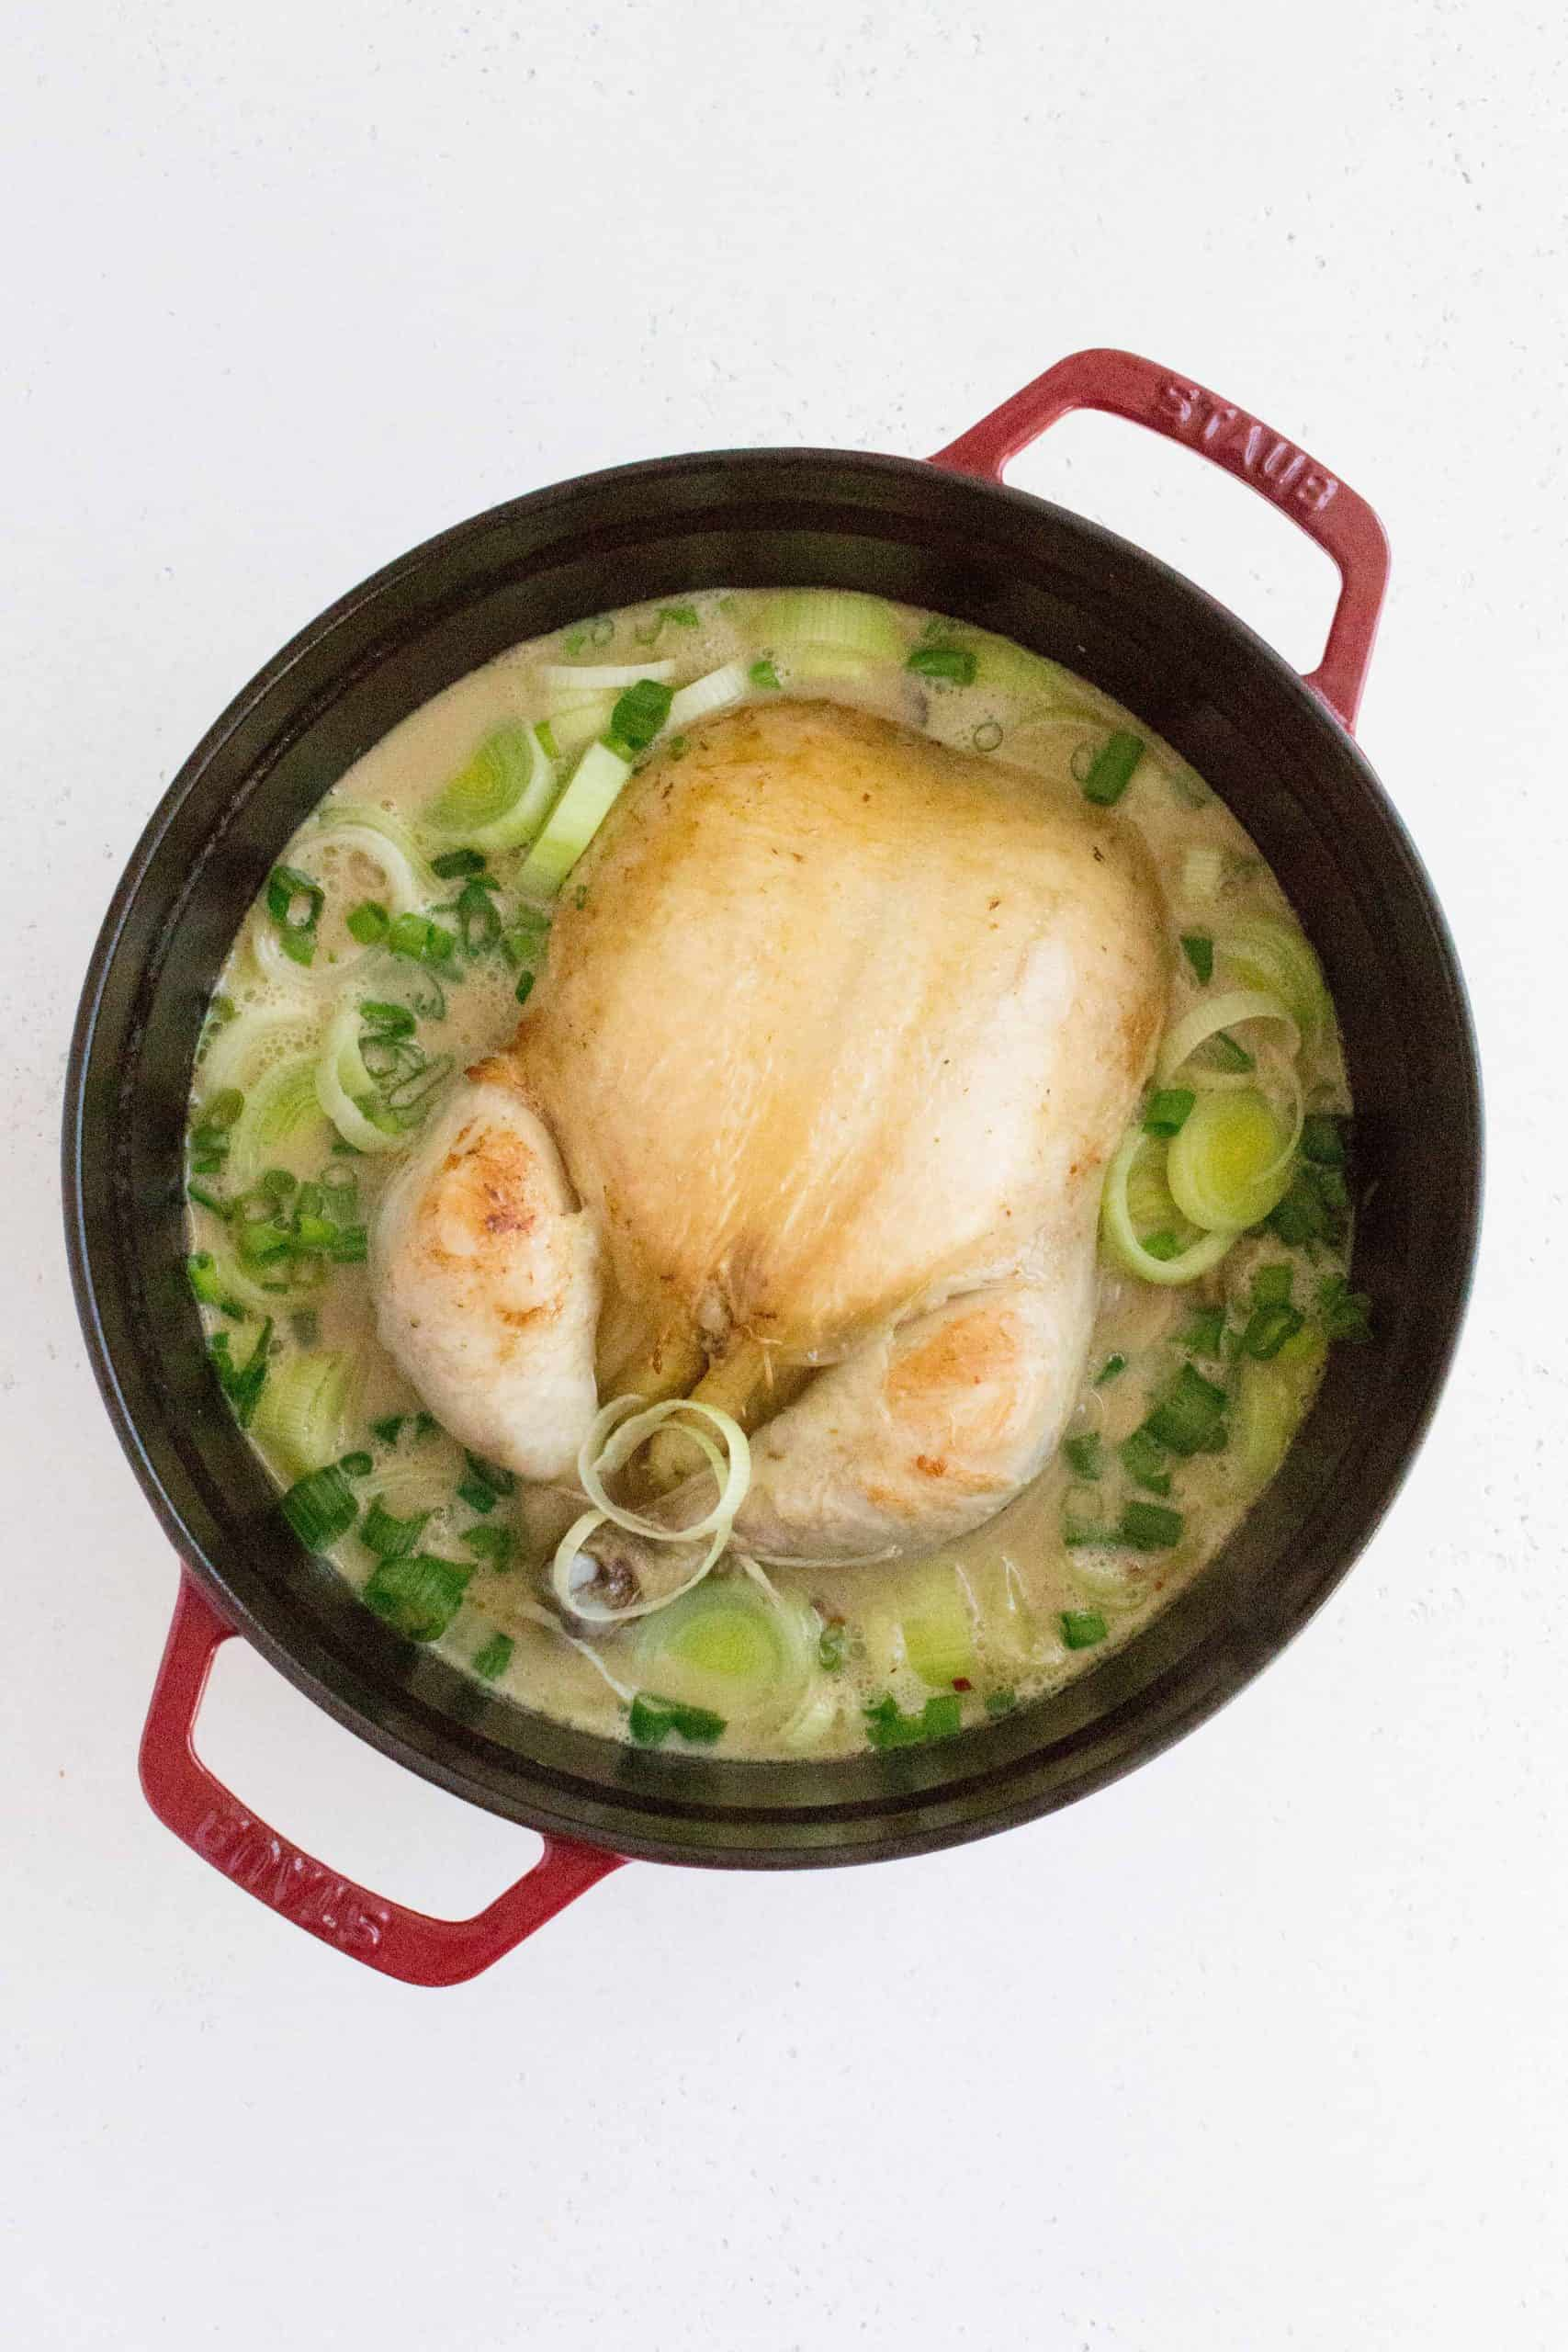 Uncover the pot, add in the leeks, lime juice + zest, and green onions. Simmer for another 10-15 minutes or until the chicken has cooked through. The safe internal temperature for cooked chicken is 165° F (75° C)